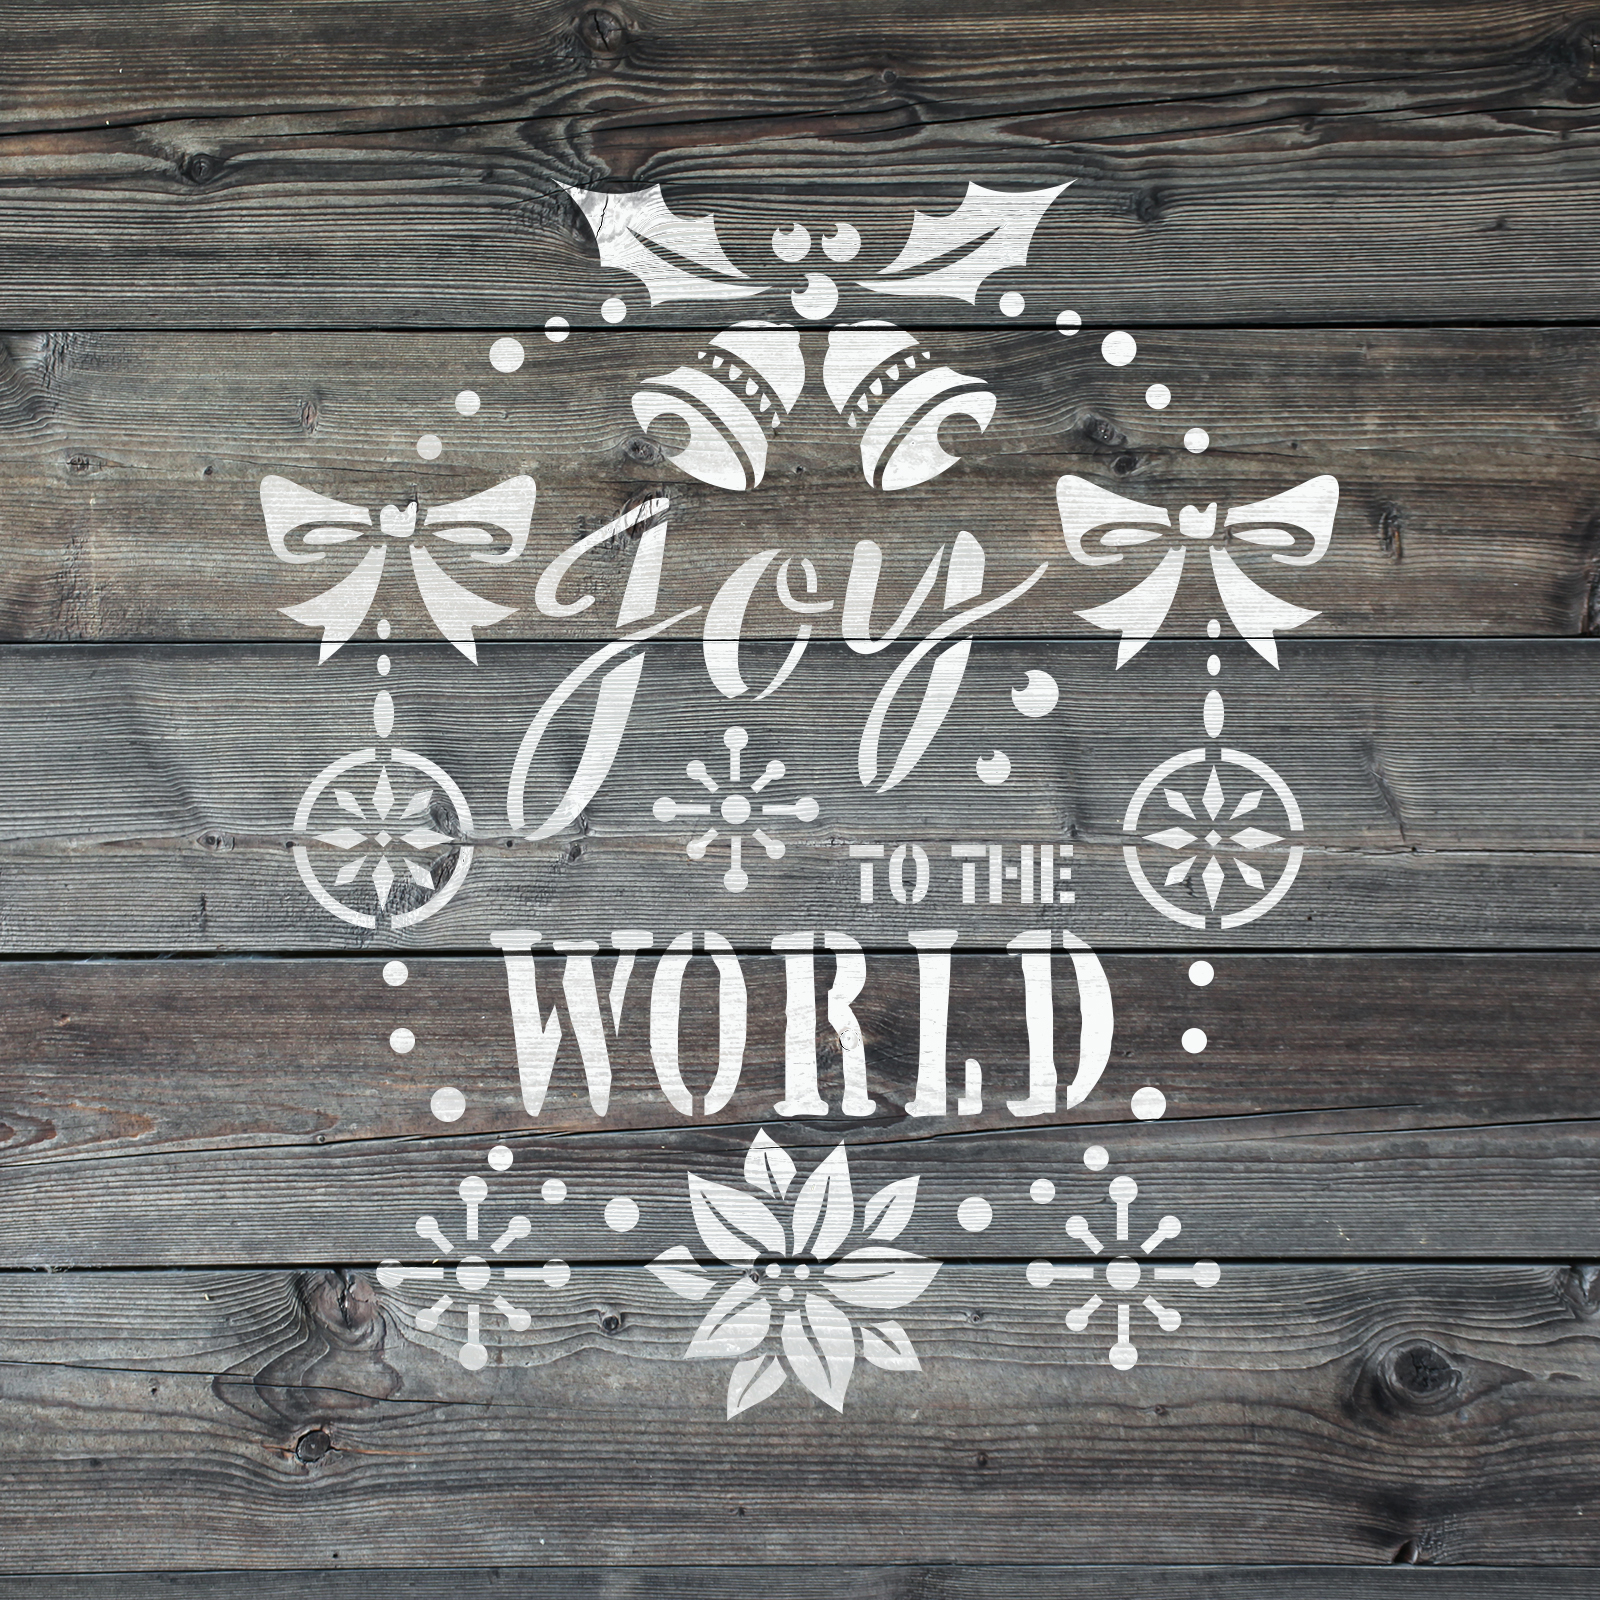 Joy To The World Stencil - Reusable Stencils of Joy To The World